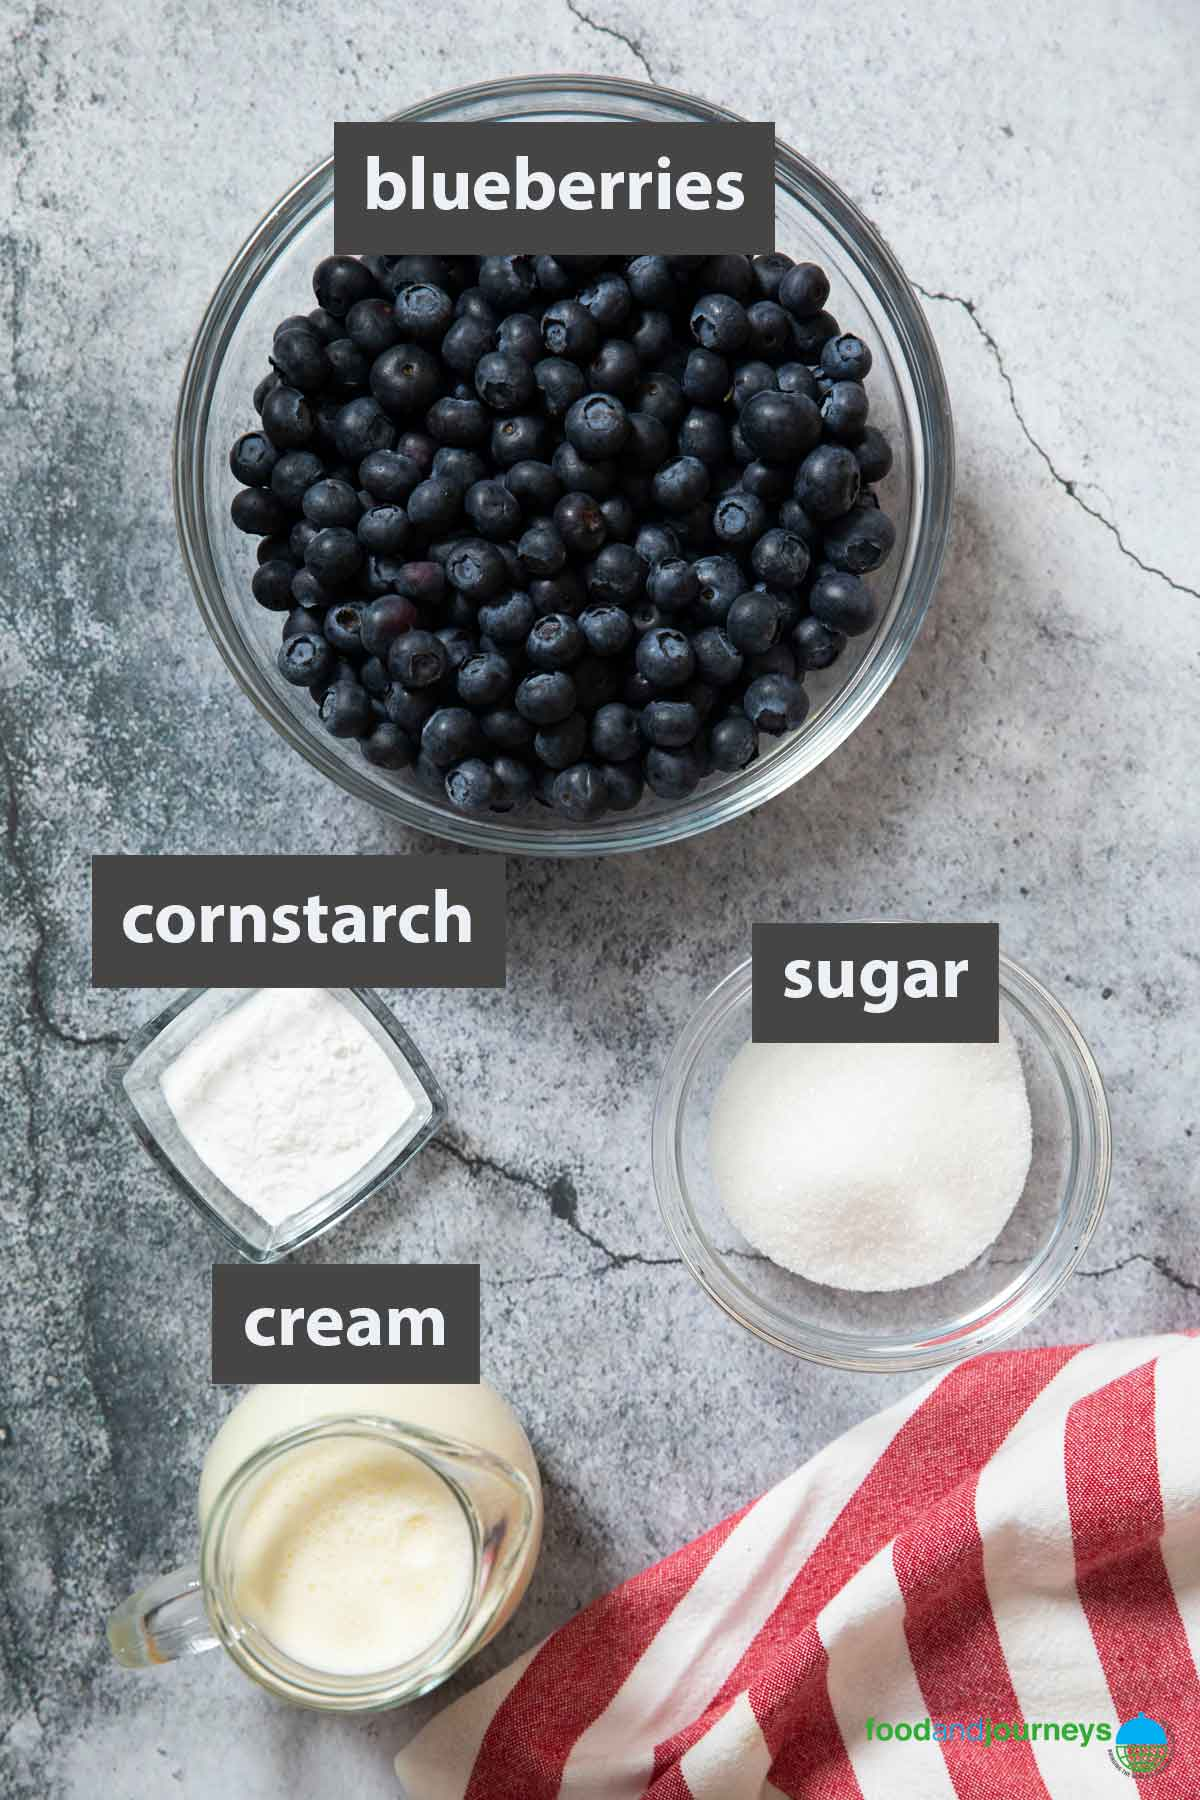 An image showing all the ingredients you need to prepare blueberry soup at home.